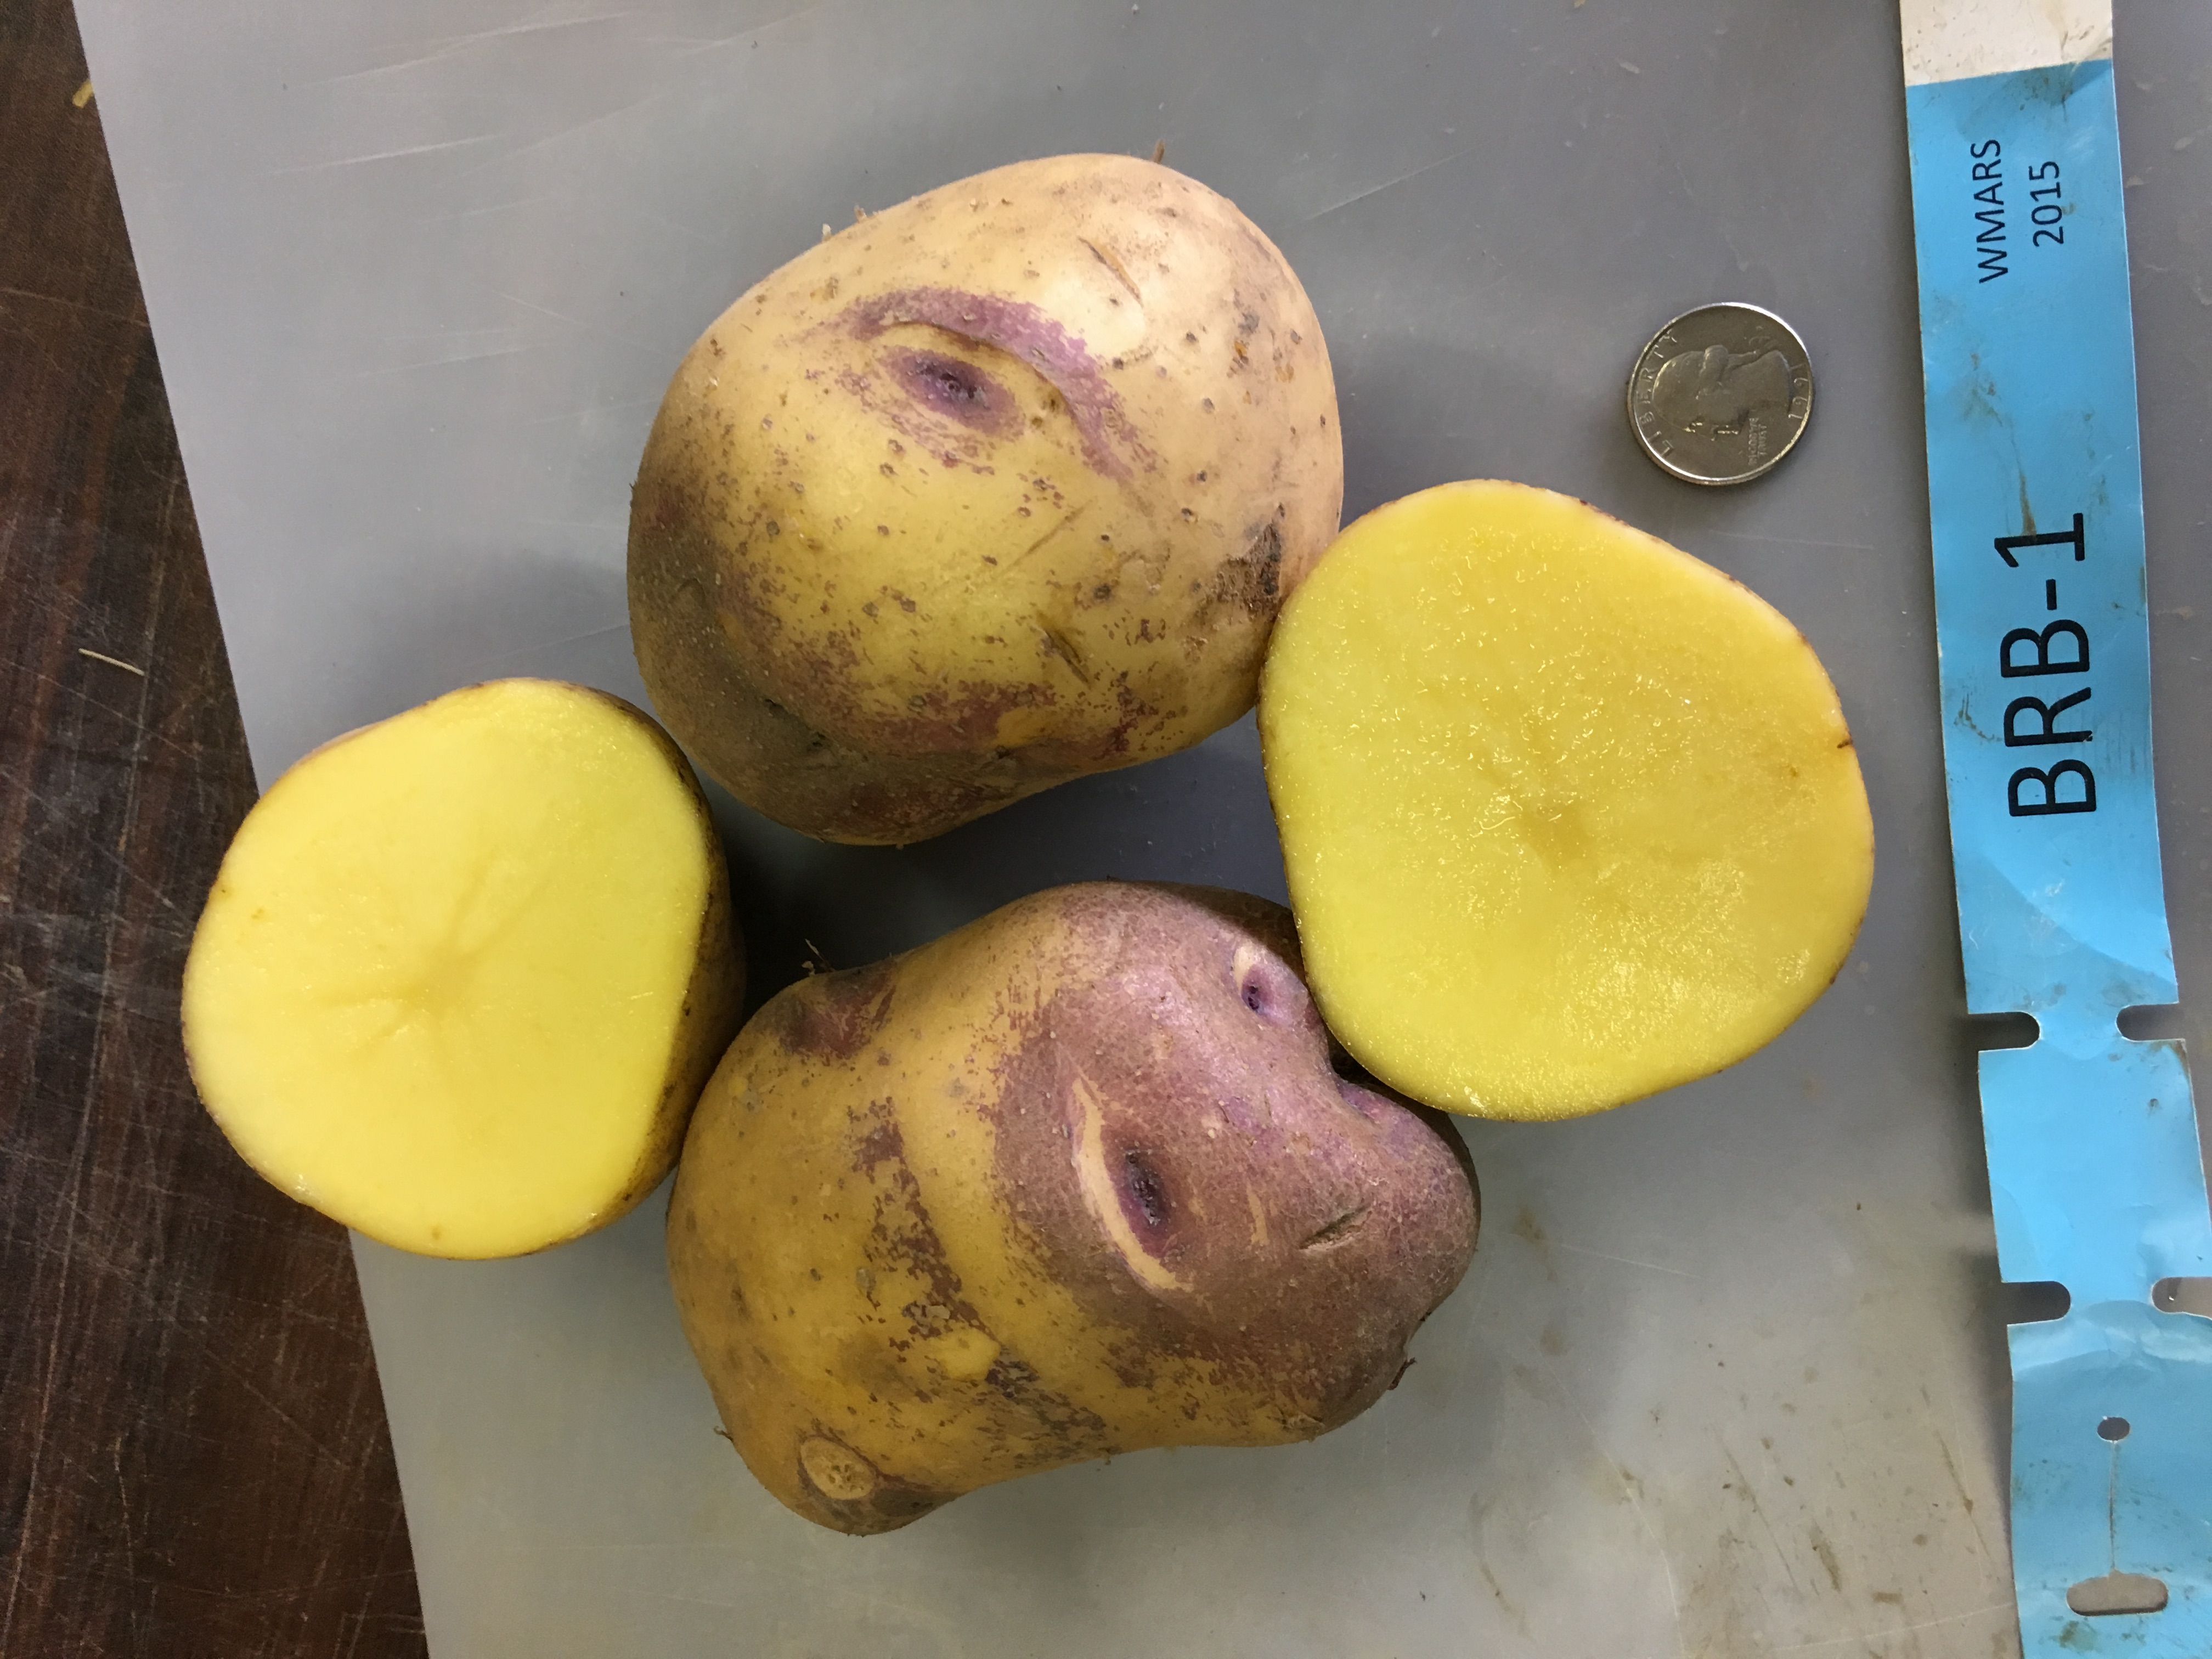 Barbara potato varieties, trialed this year. Photo by Ruth Genger